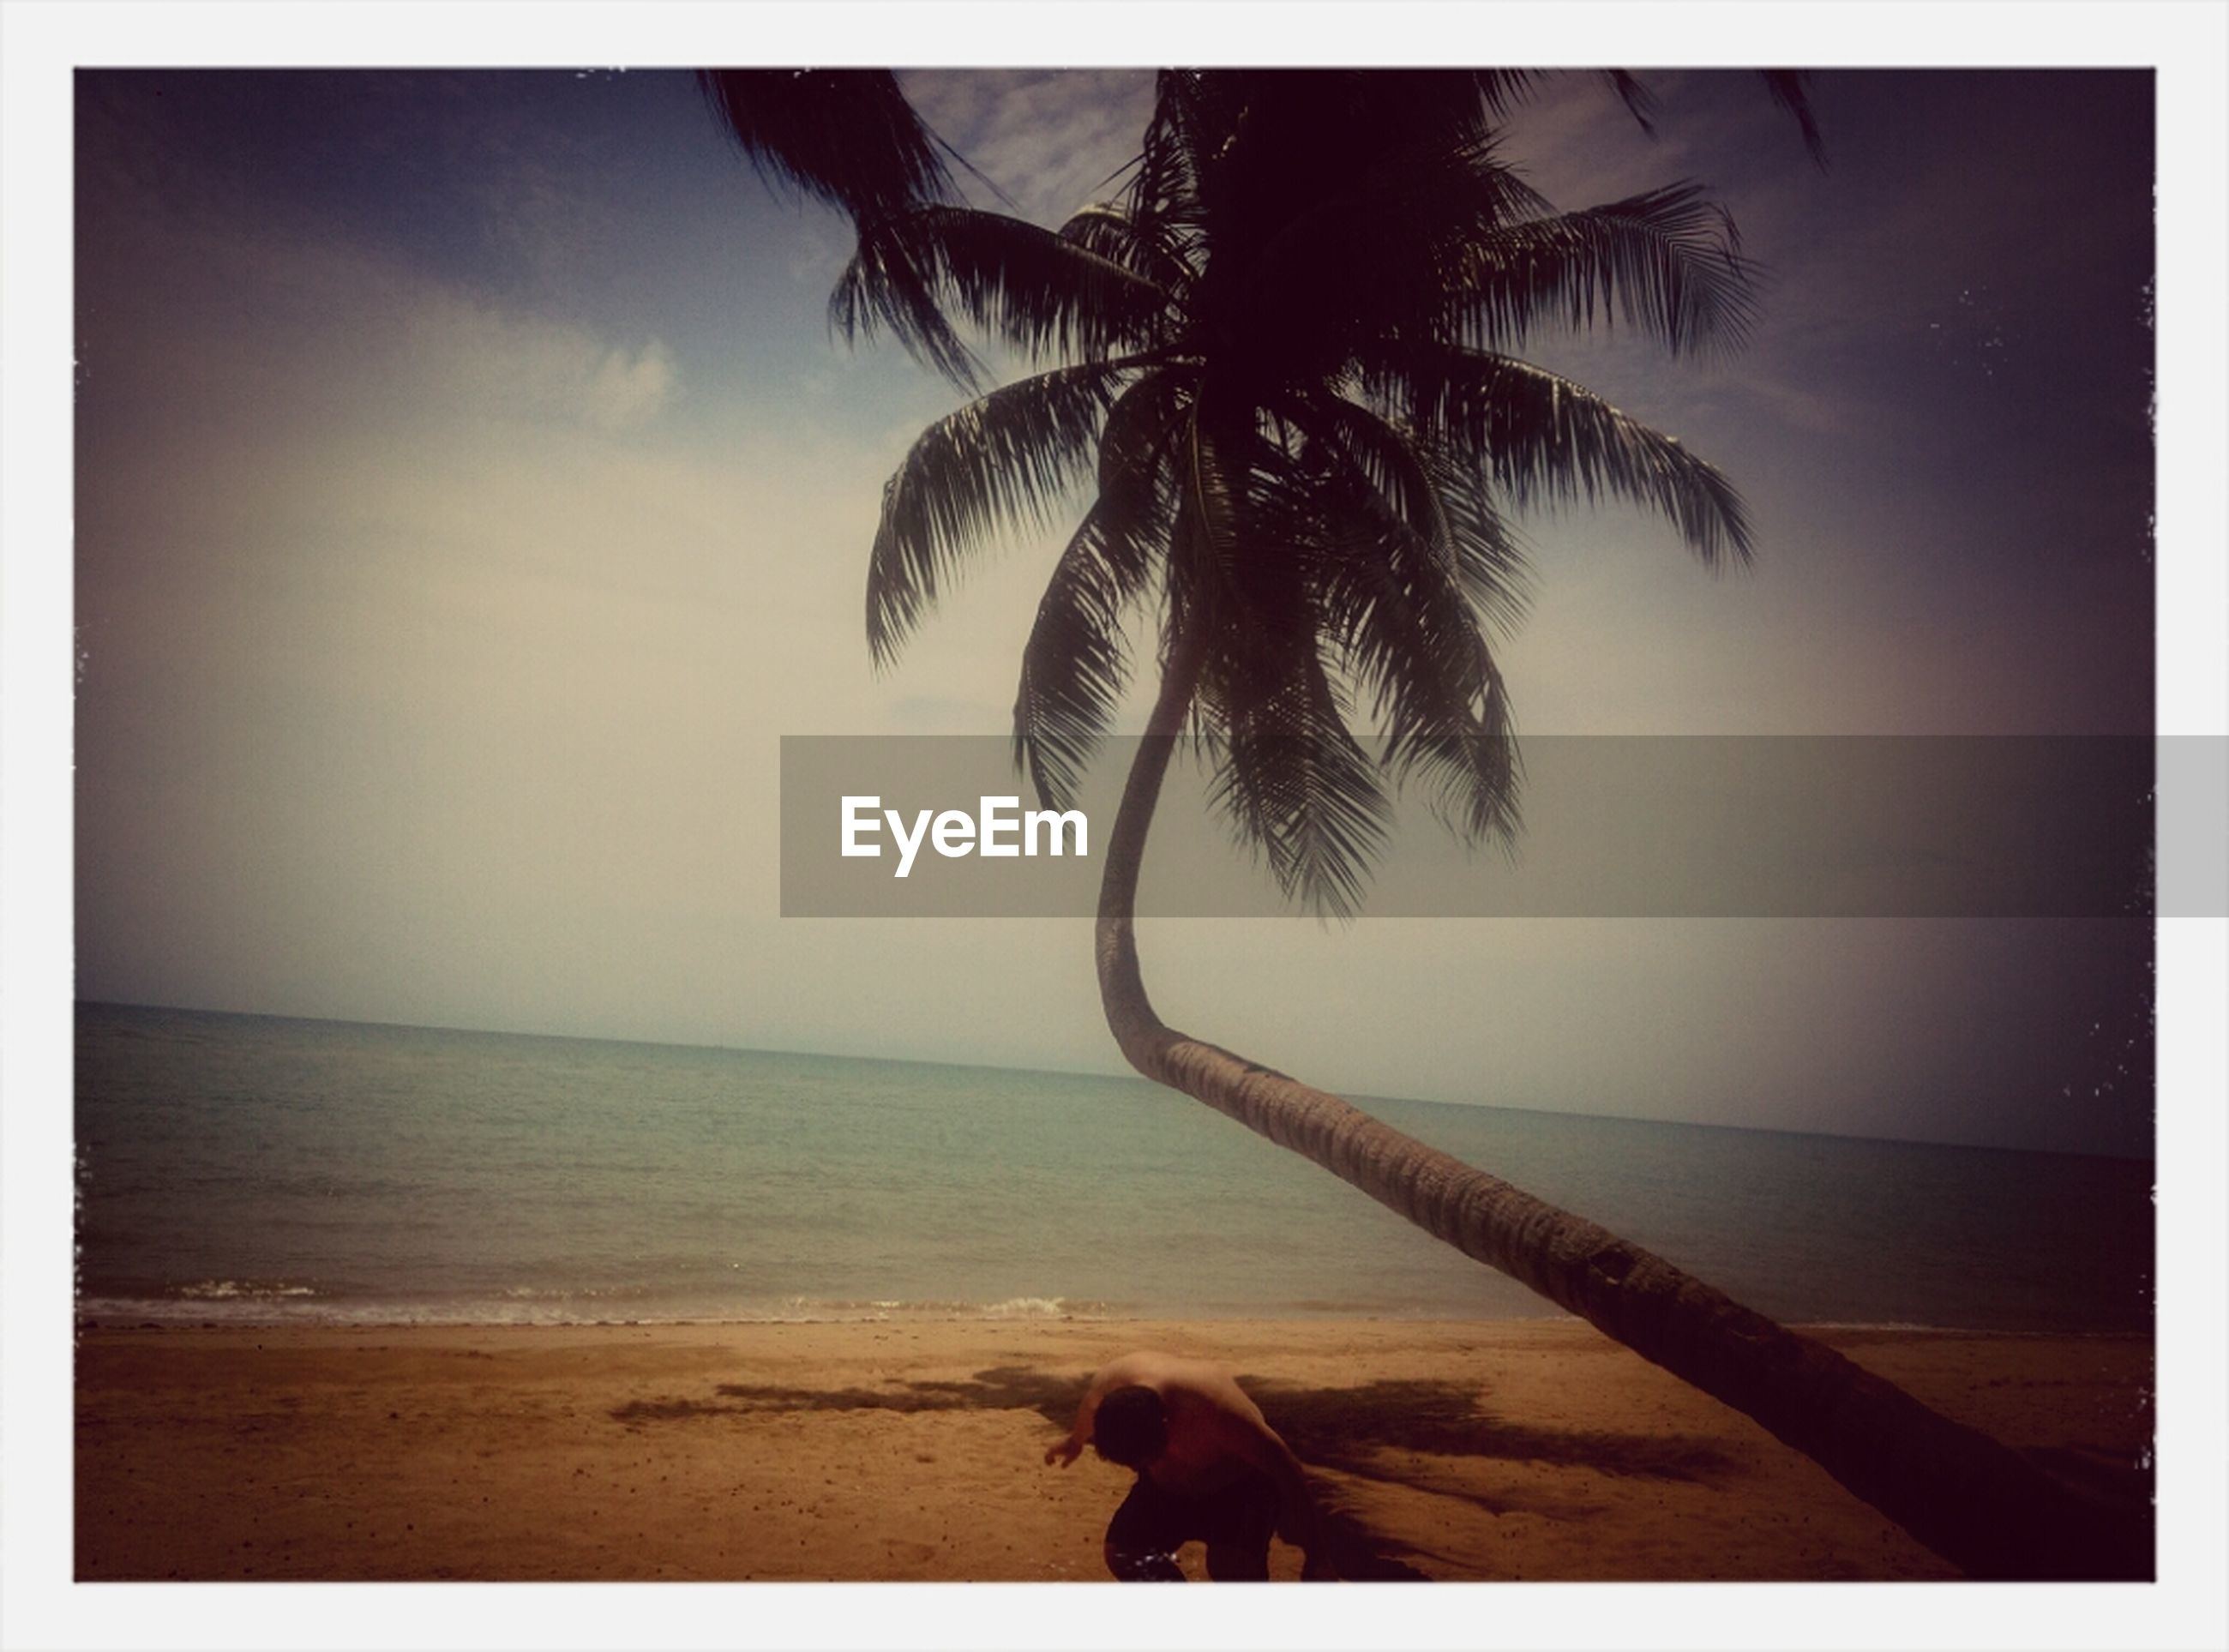 sea, horizon over water, beach, palm tree, water, shore, sky, tranquility, tranquil scene, scenics, tree, sand, beauty in nature, transfer print, nature, auto post production filter, idyllic, coastline, tree trunk, outdoors